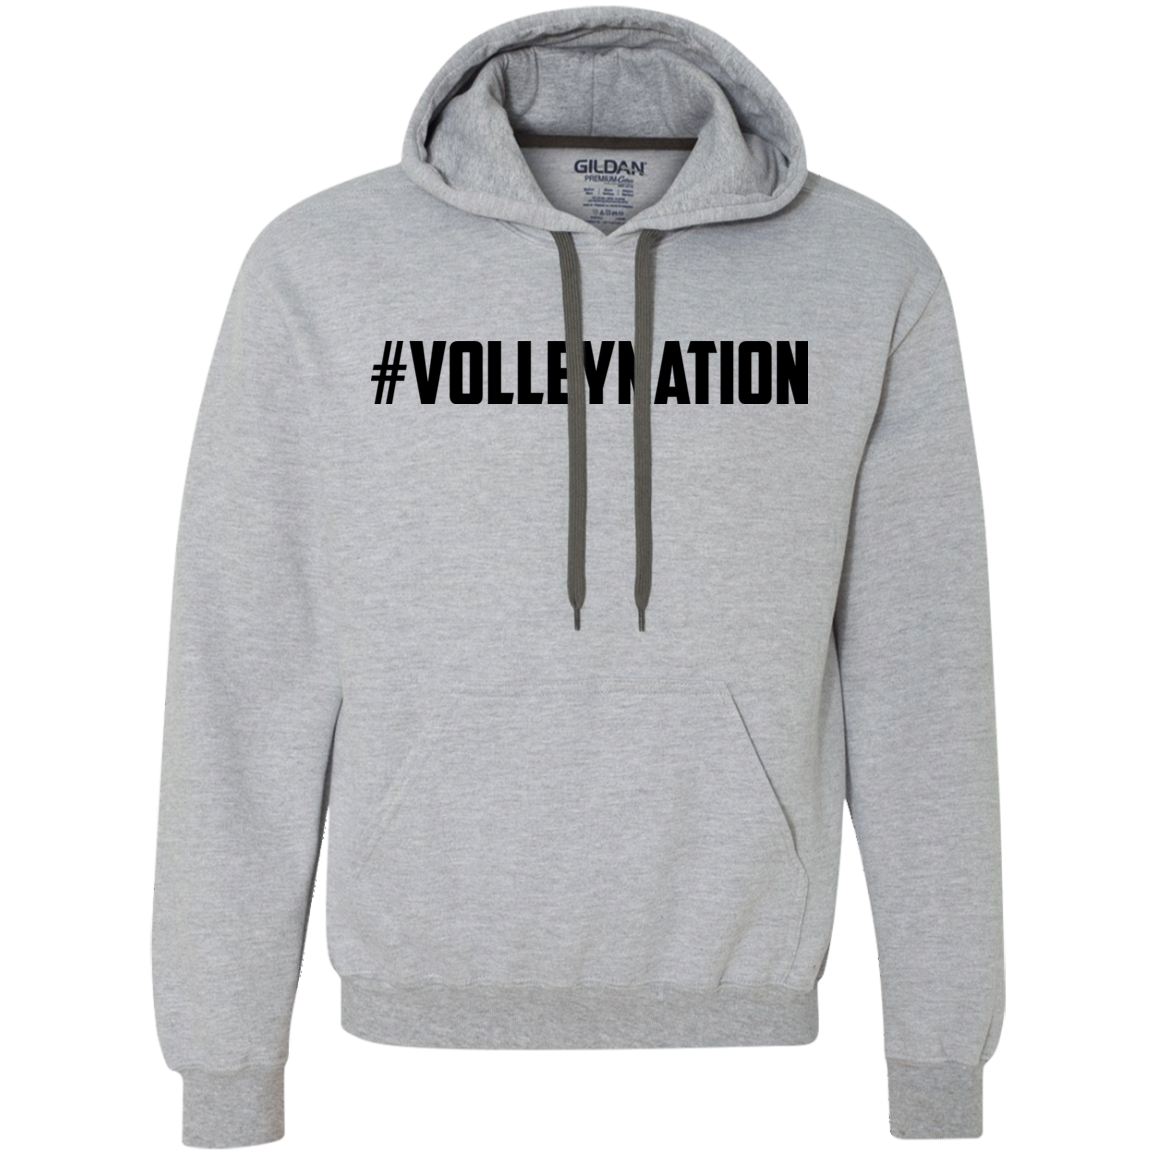 #VolleyNation (Black) Heavyweight Pullover Fleece Sweatshirt